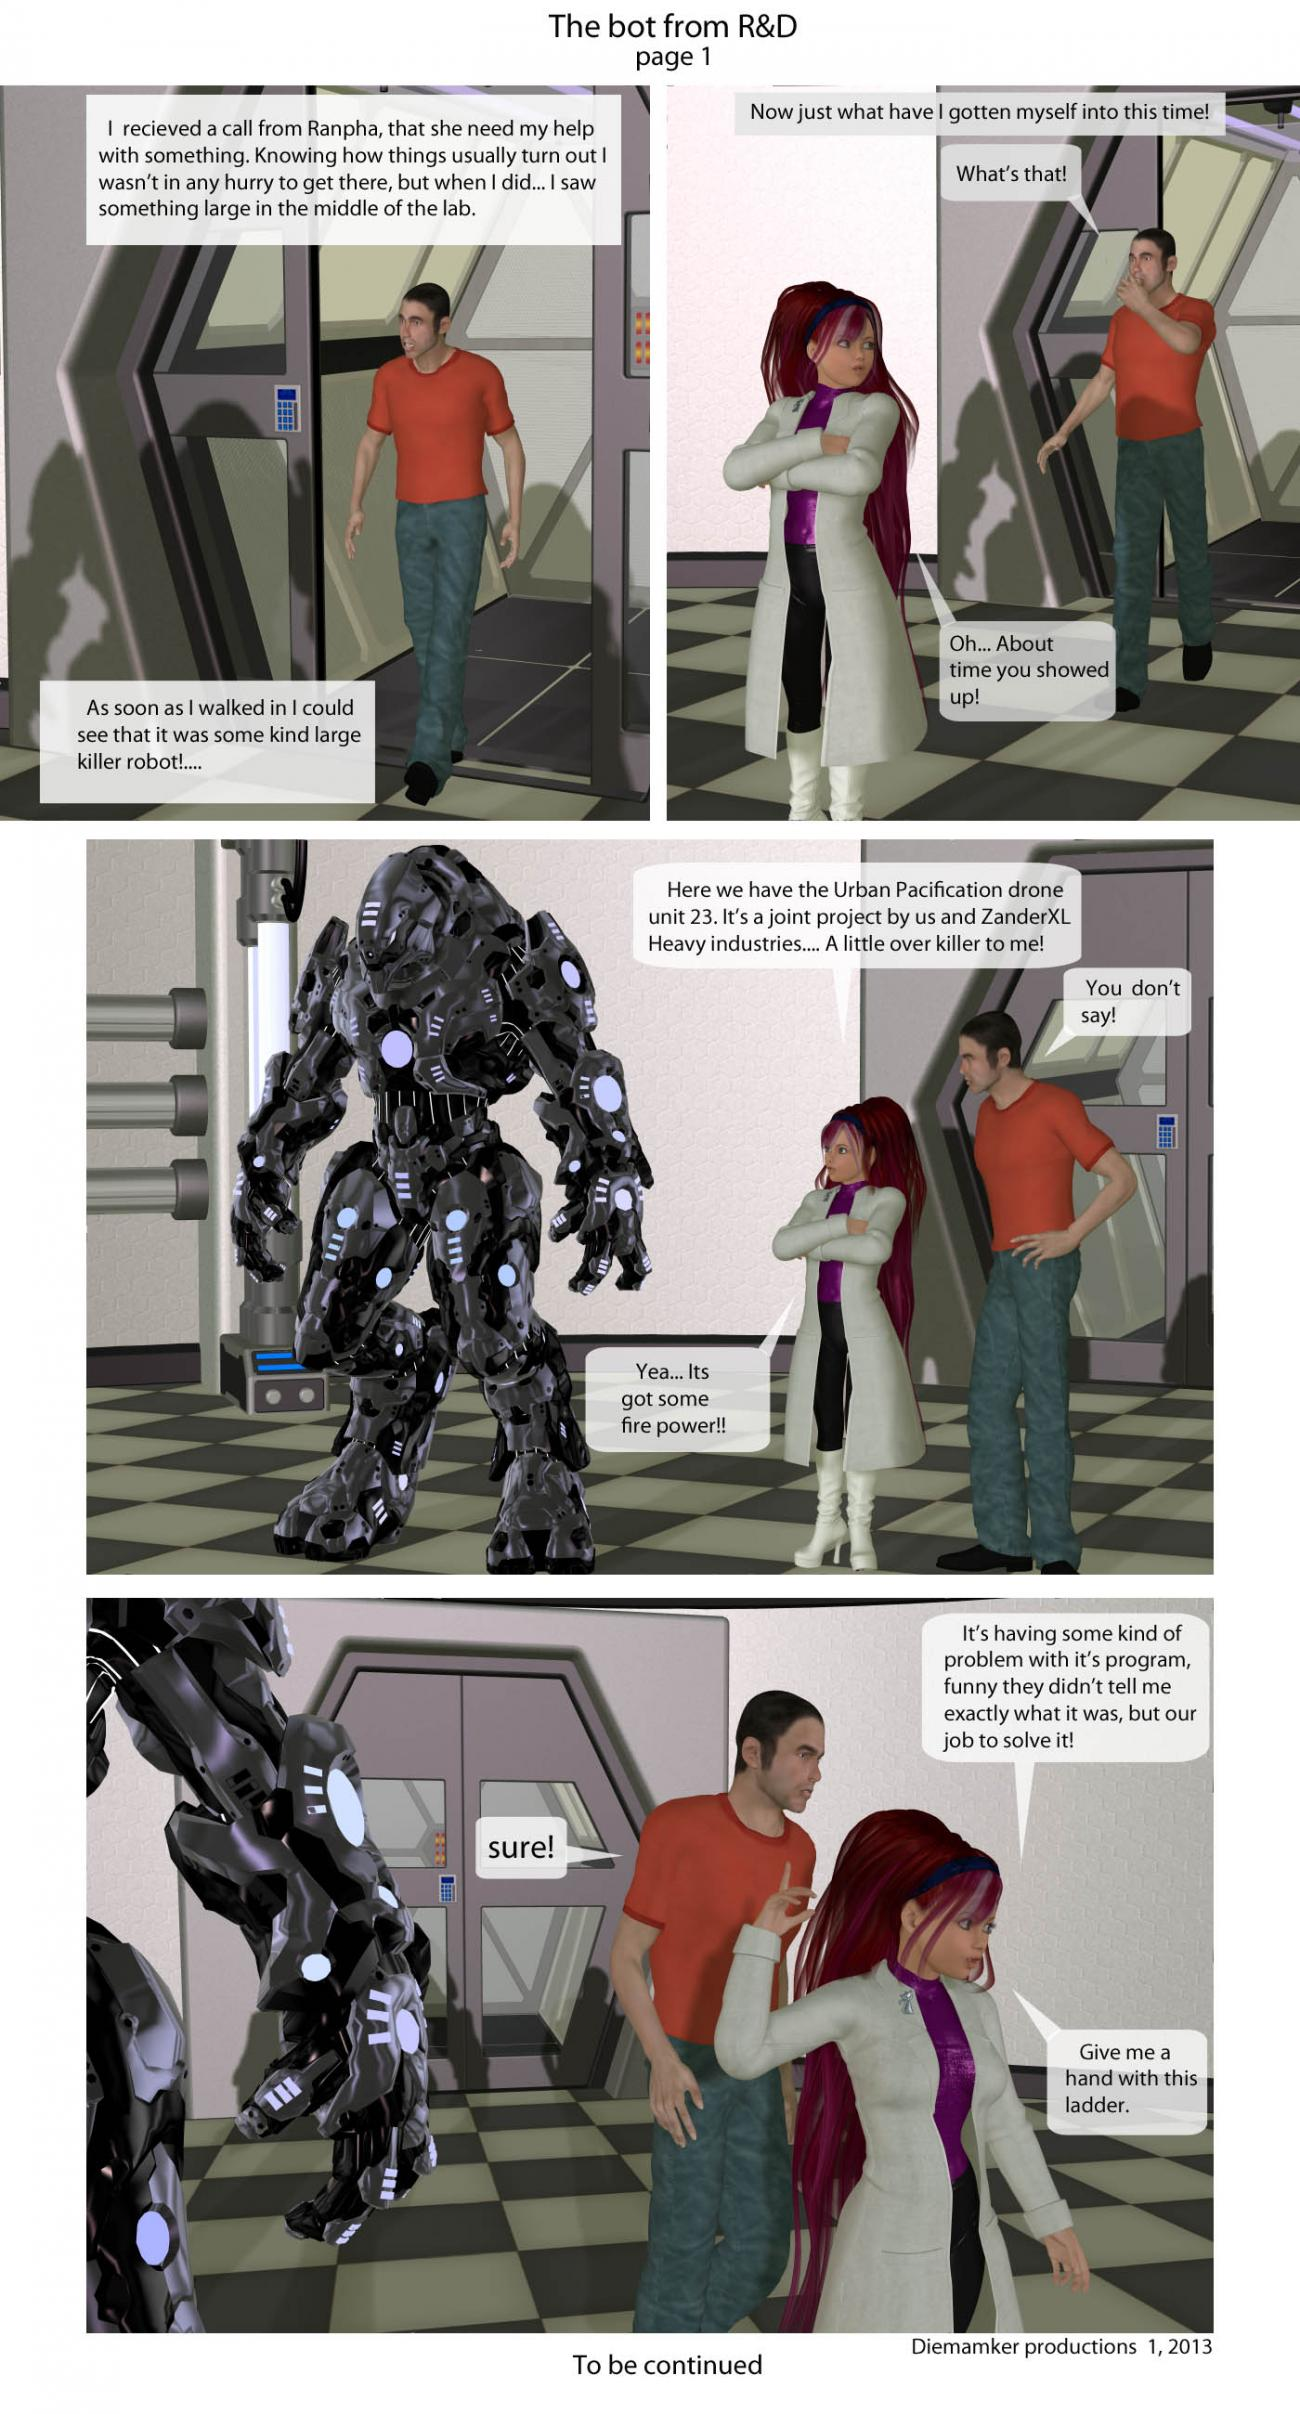 The bot from R&D... scene 1